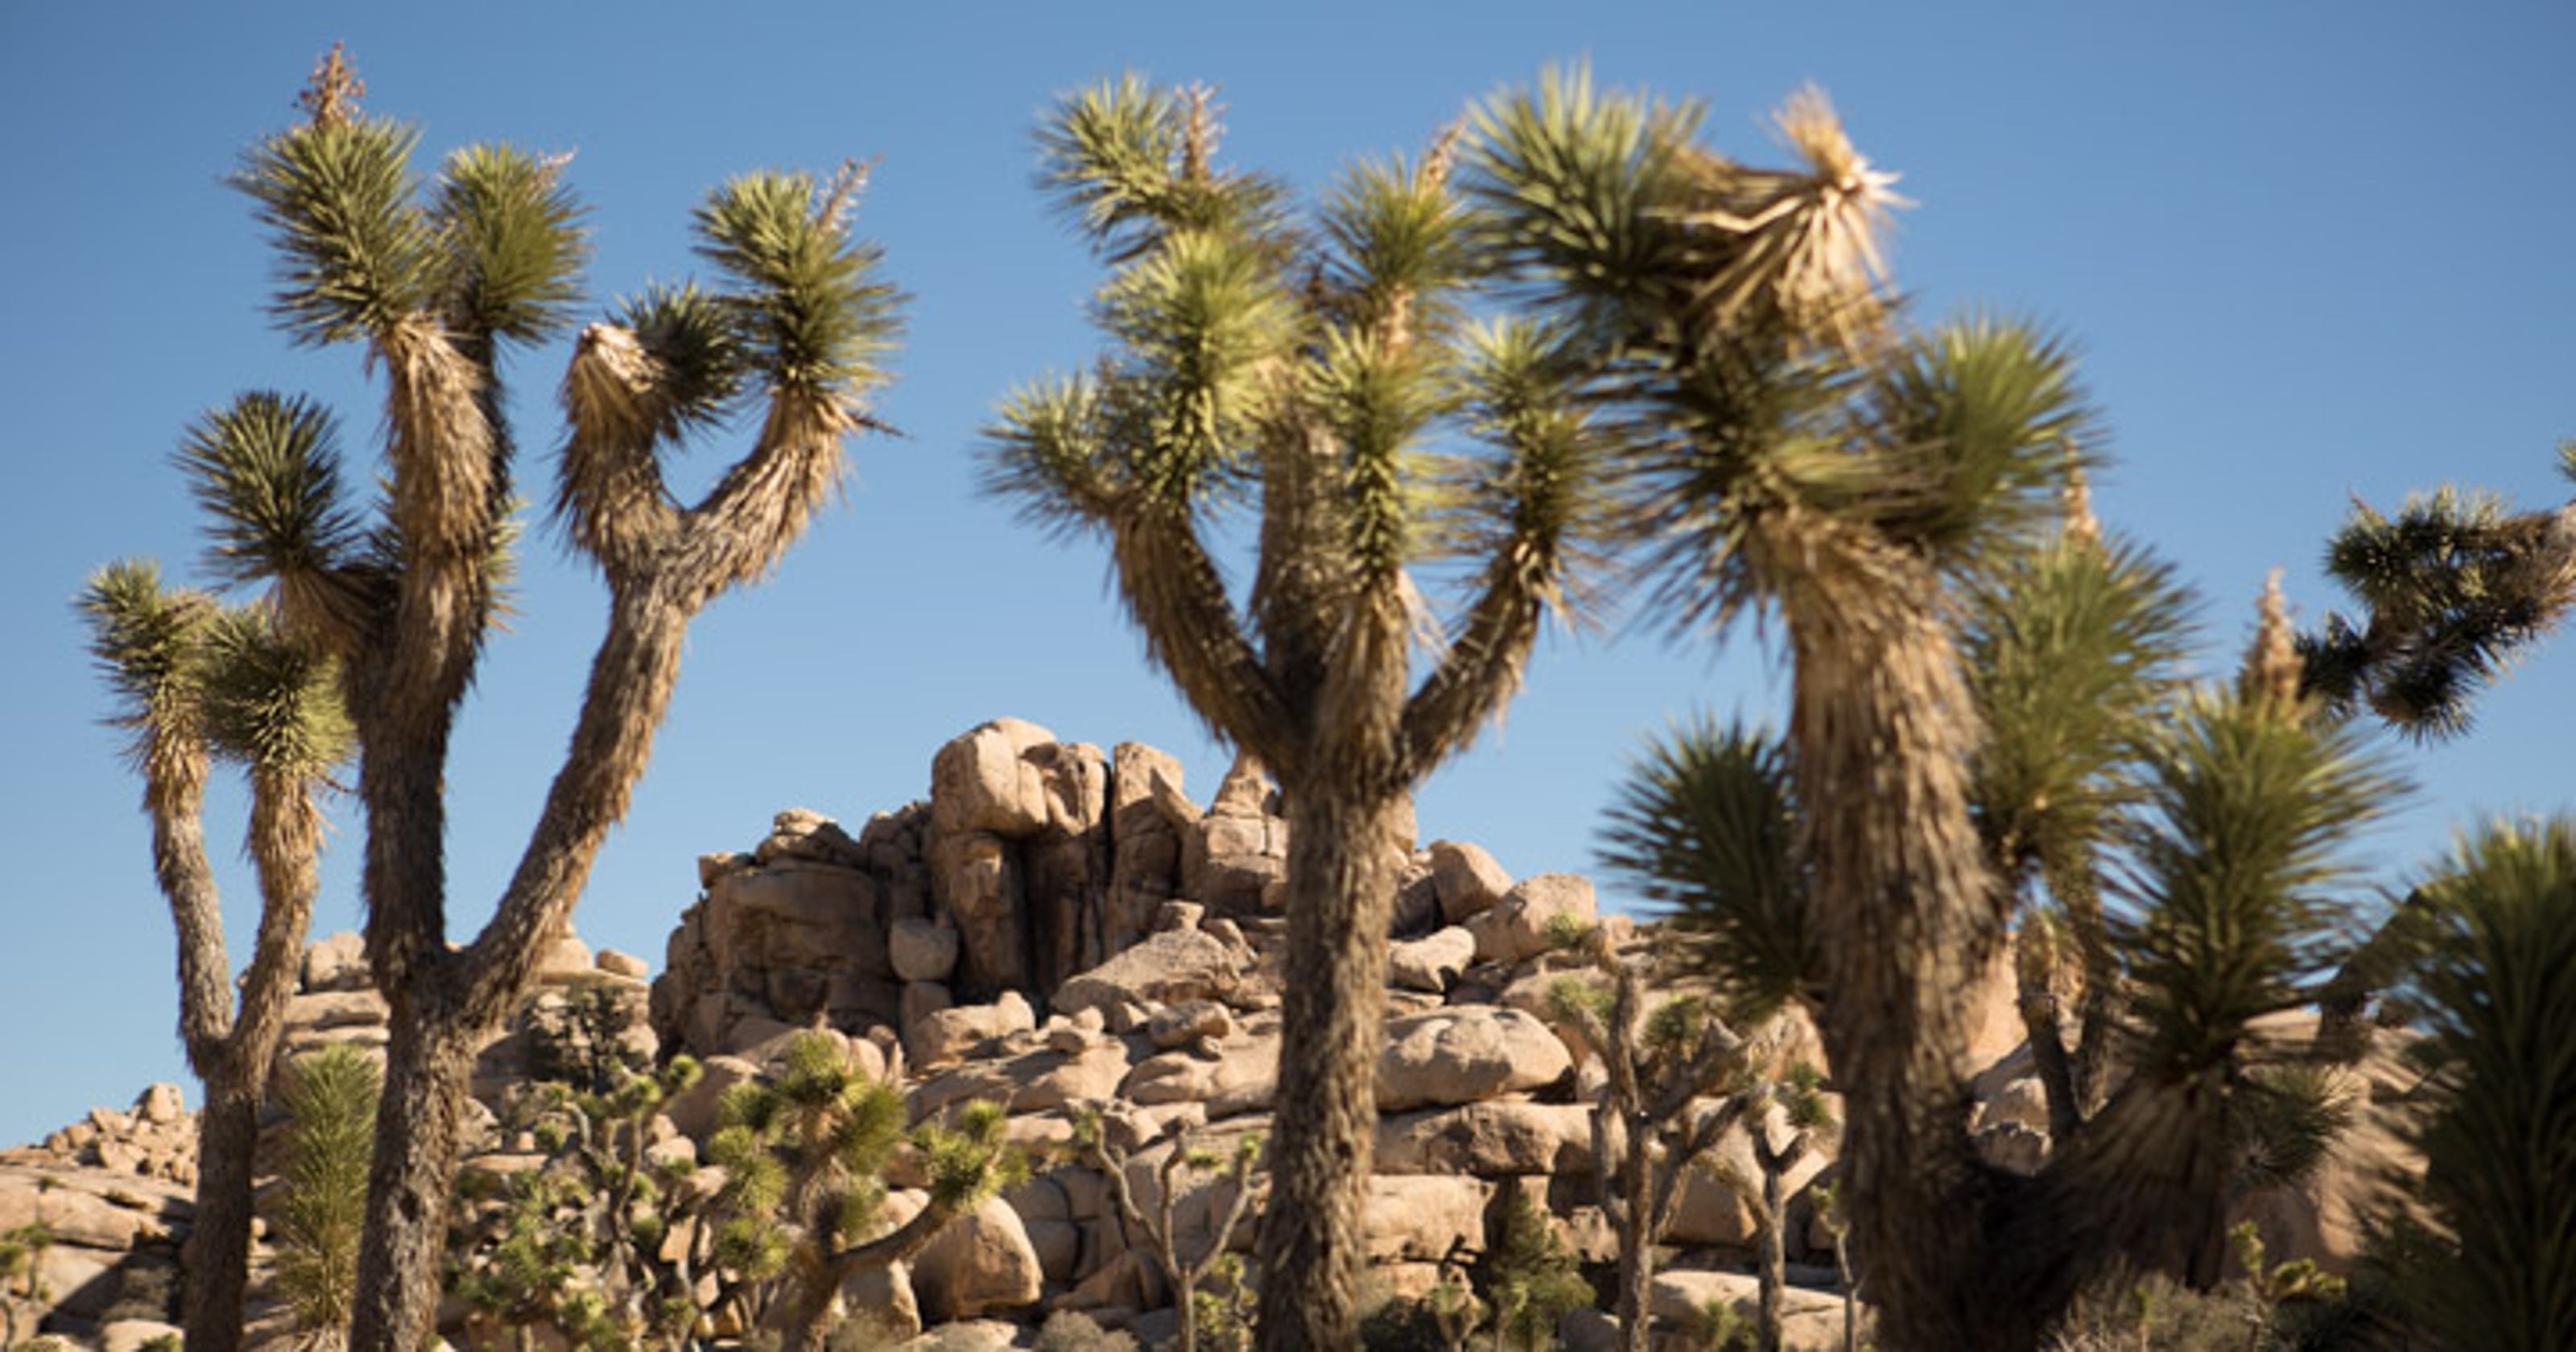 Joshua Tree National Park: 10 tips for visiting the park